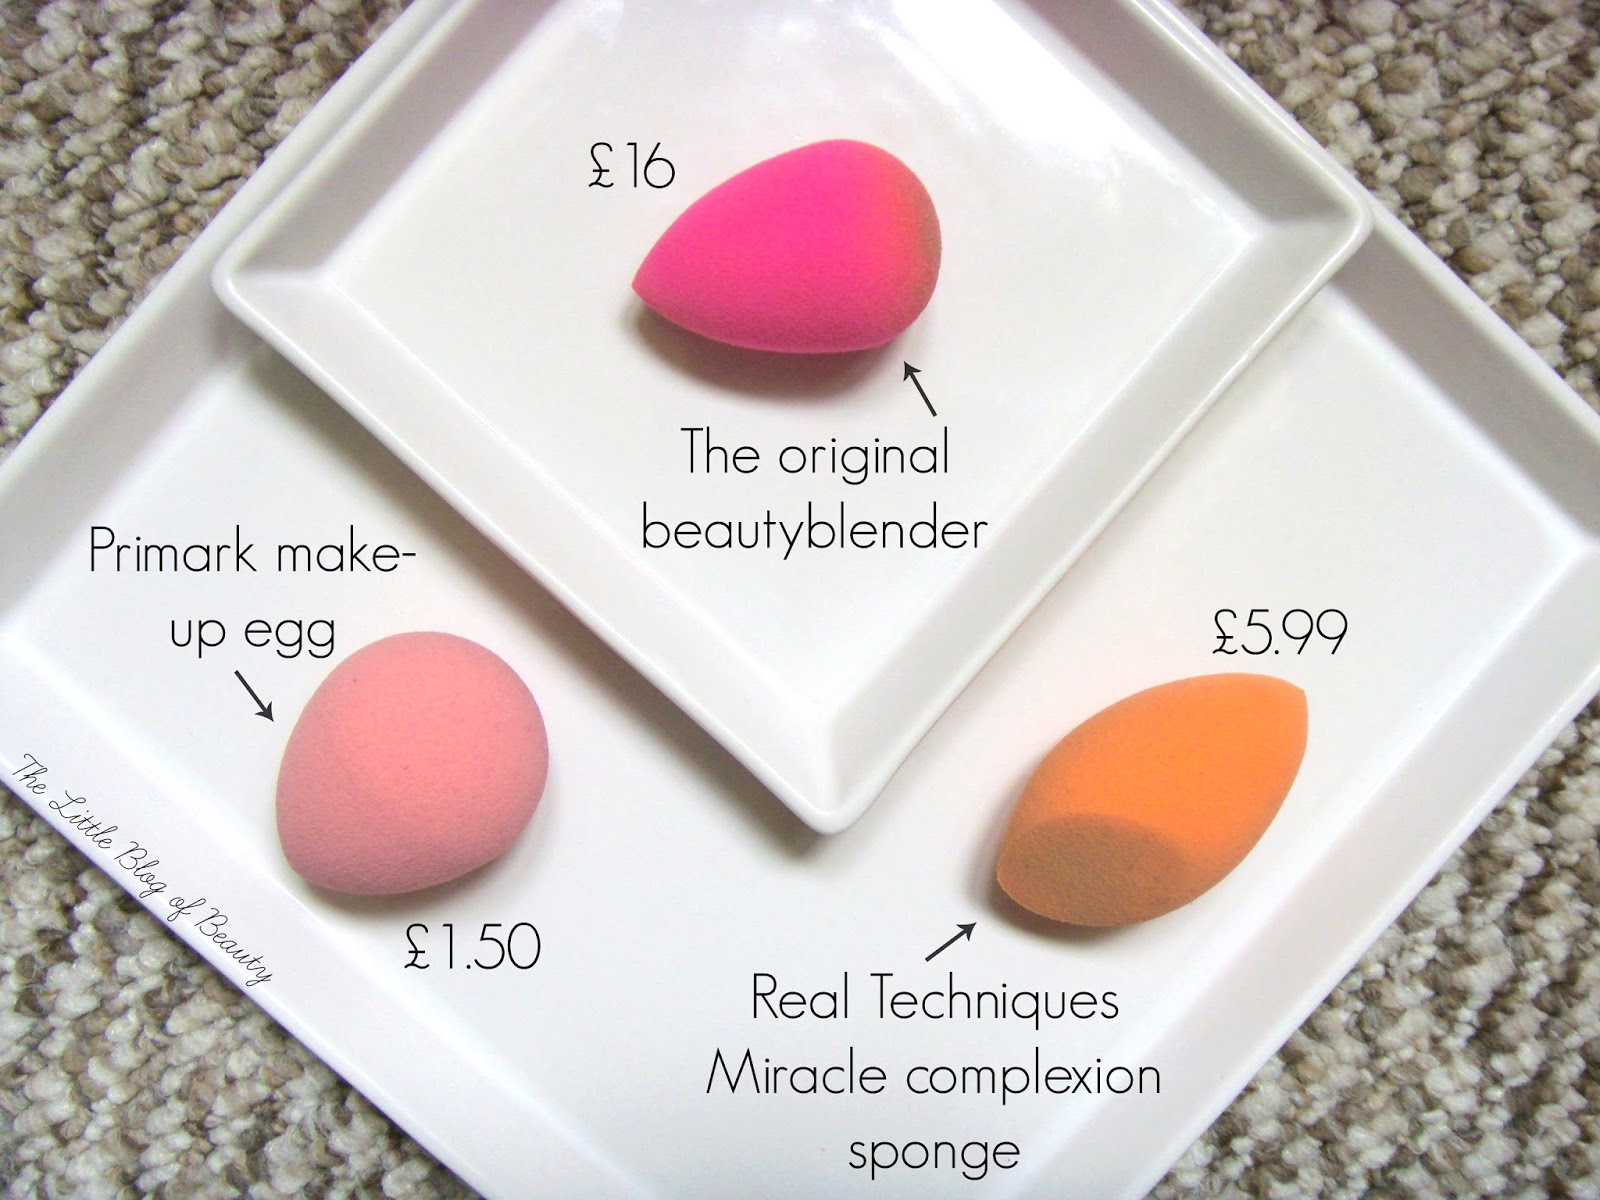 Makeup sponges - The eggsperiment